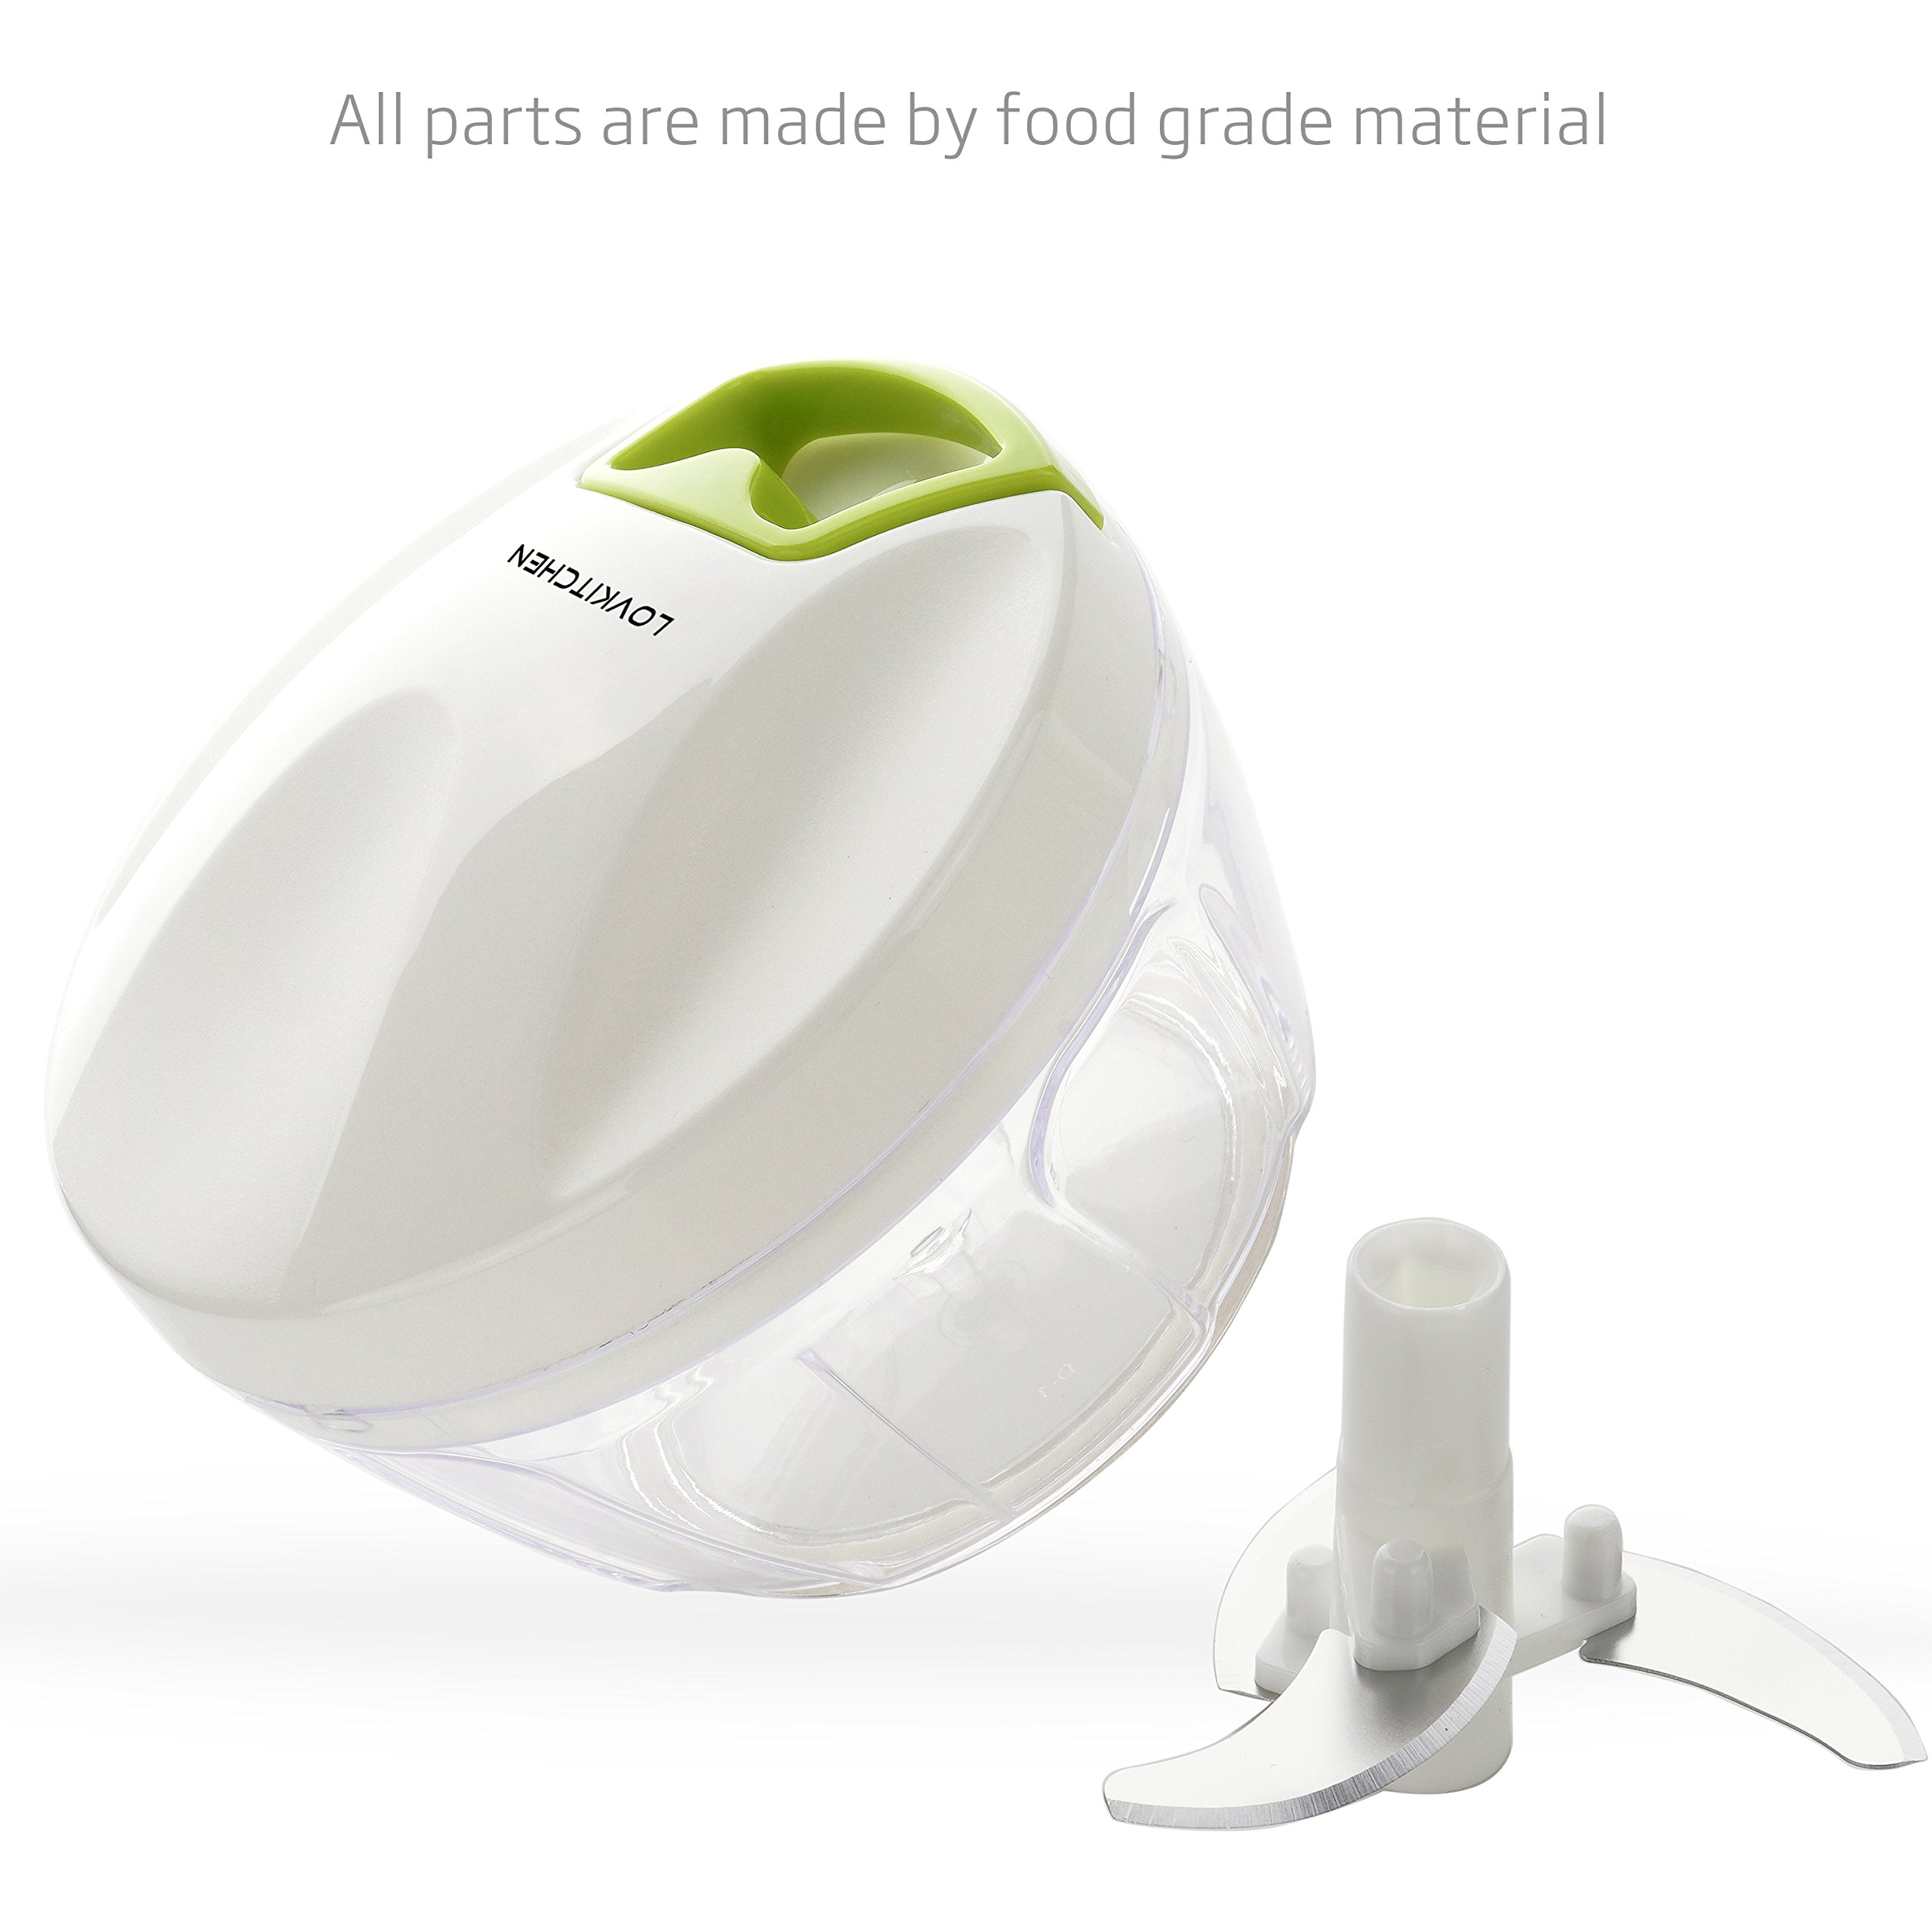 Manual Food Chopper-LOVKITCHEN Compact and Powerful Hand Held Vegetable Chopper/Mincer/Blender to Chop Fruits/Vegetables/Nuts/Herbs/Onions/Garlics for Salsa,Salad,Pesto,Coleslaw,Puree (S)